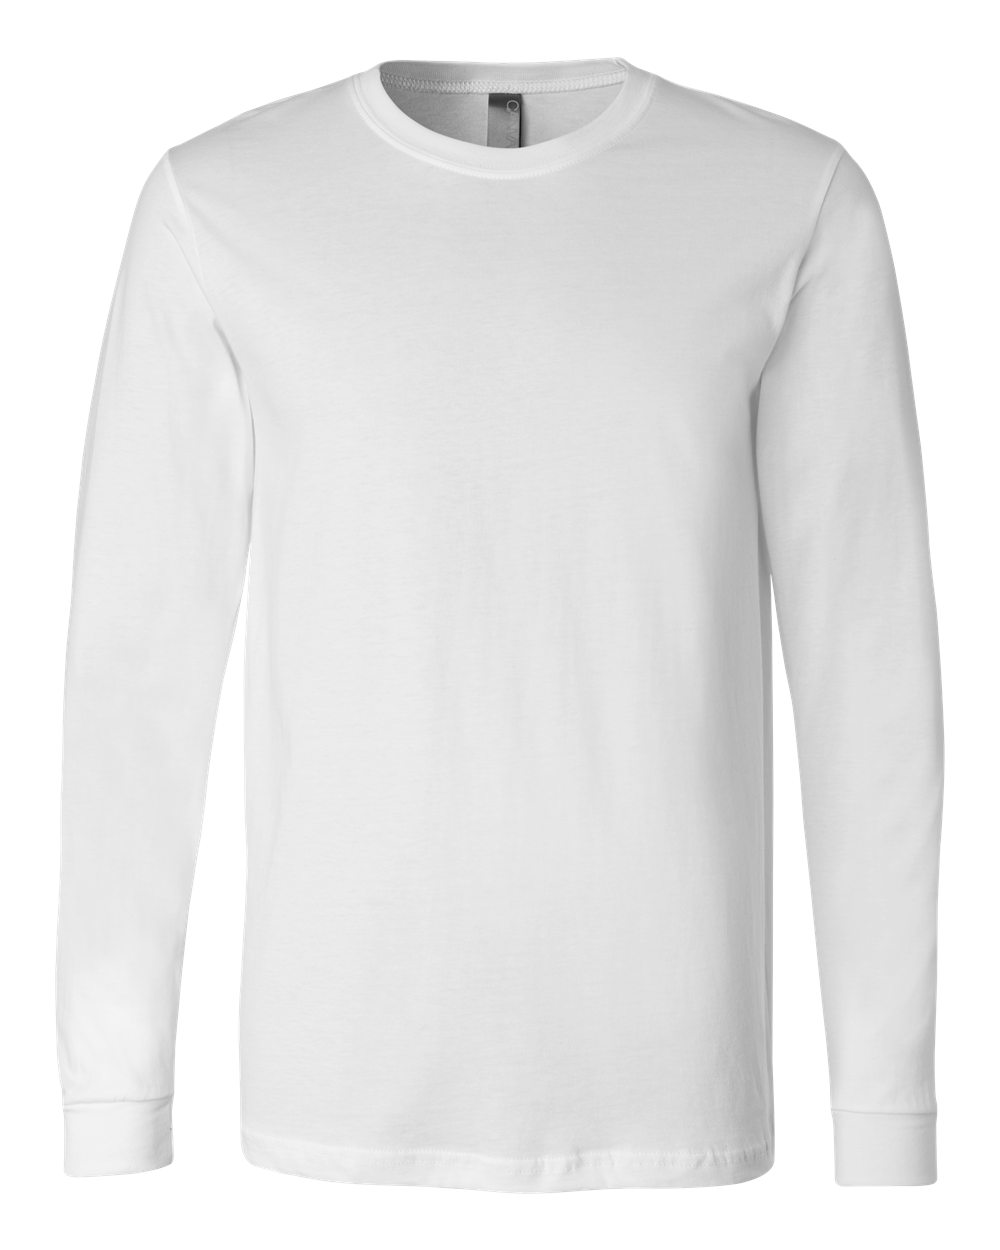 Design t shirt long sleeve - Long Sleeve Jersey T Shirt